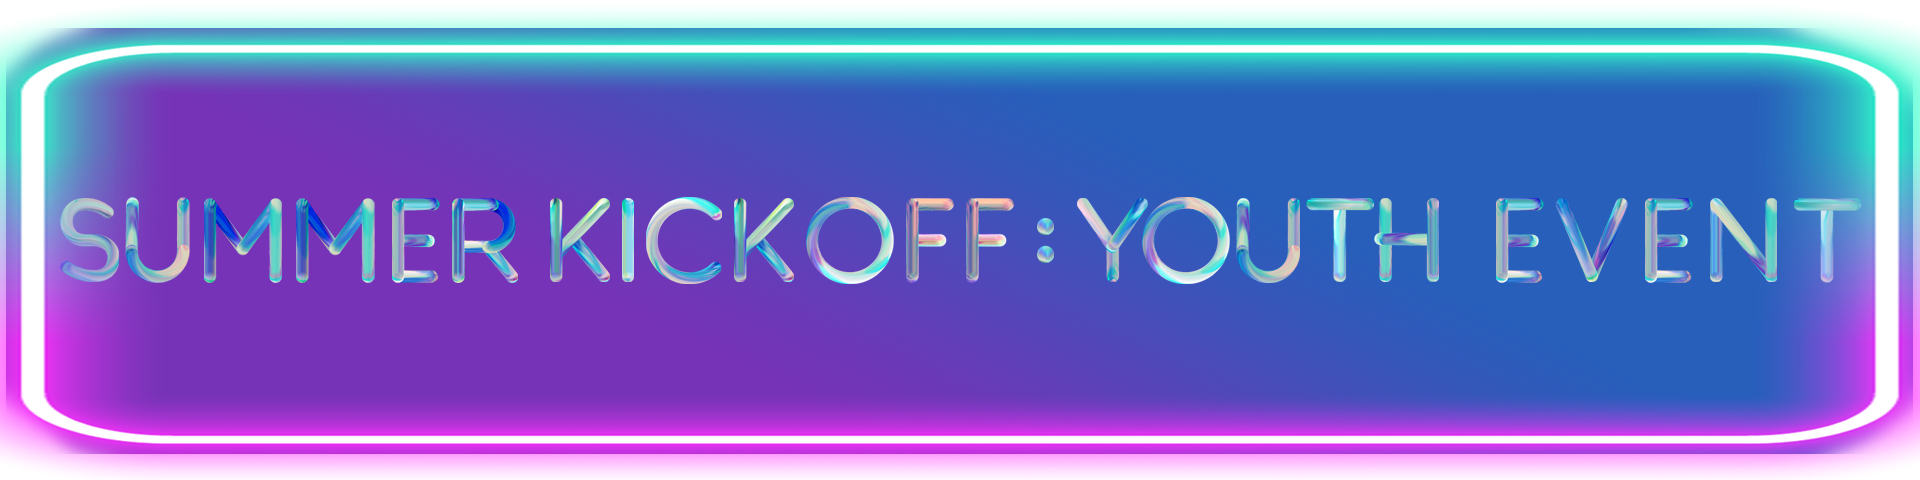 summer kickoff youth event banner curved.png